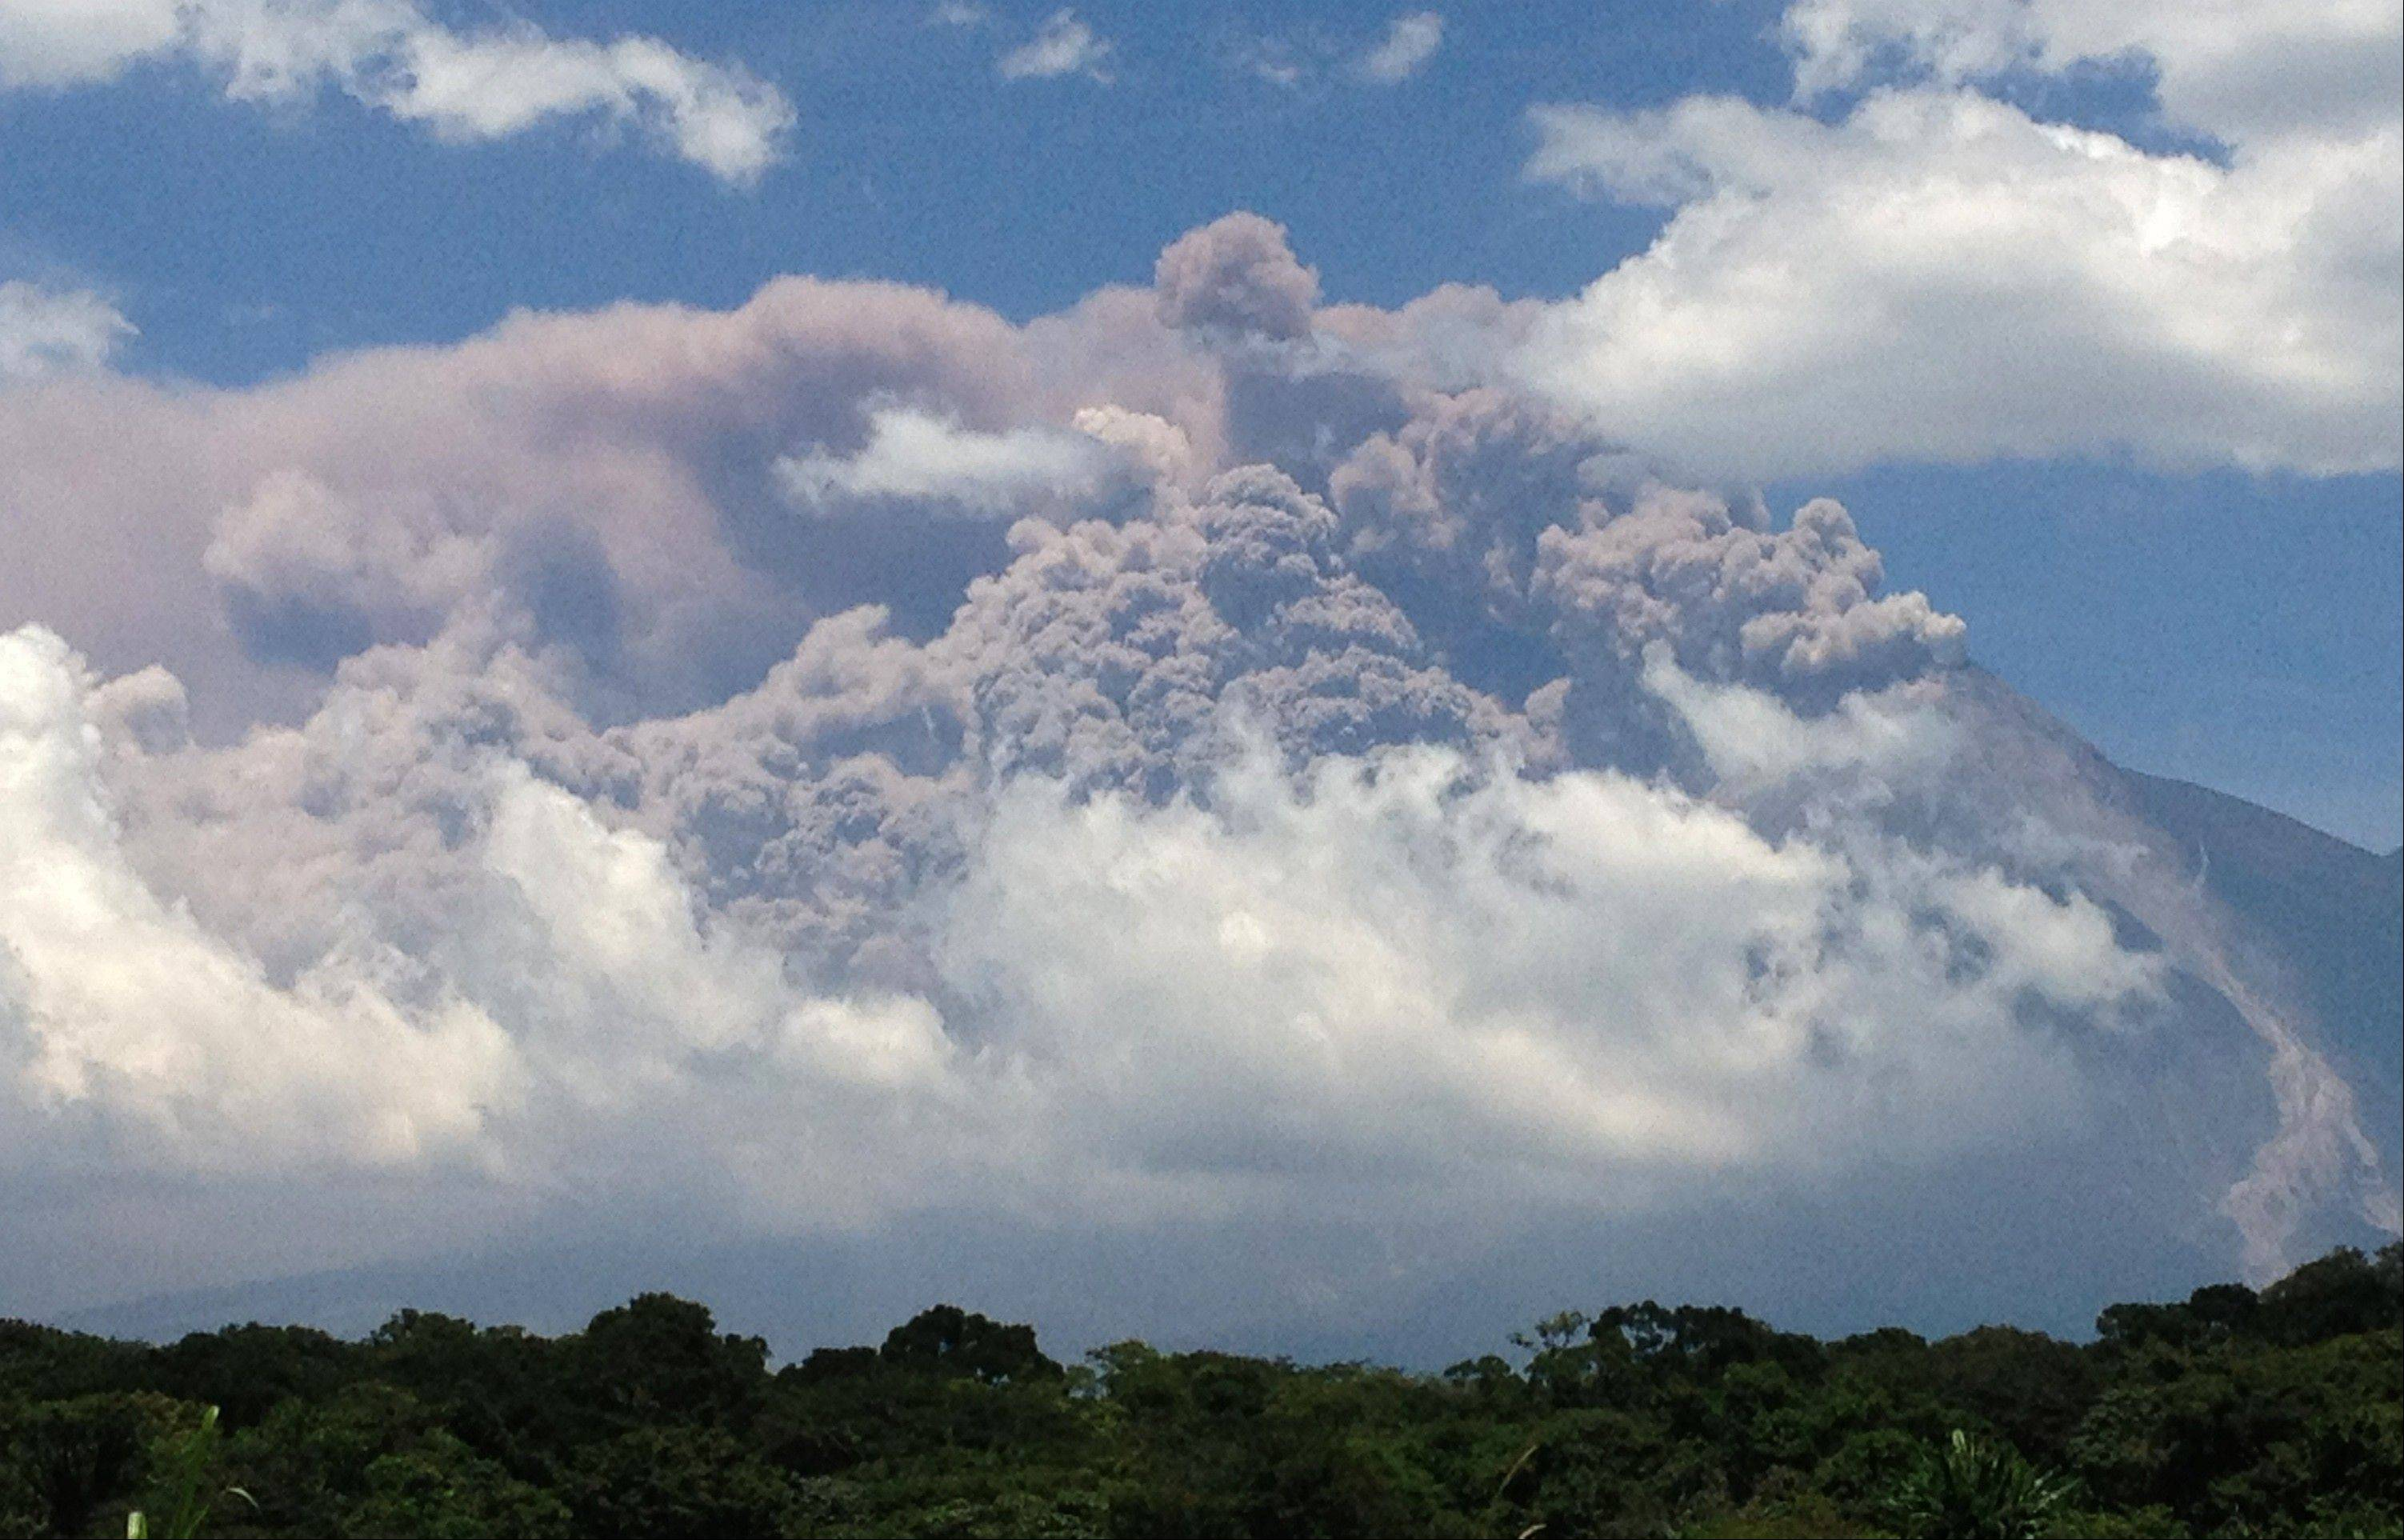 In this image from a cell phone, plumes of smoke rise from the Volcan de Fuego or Volcano of Fire as seen Thursday from Palin, south of Guatemala City.